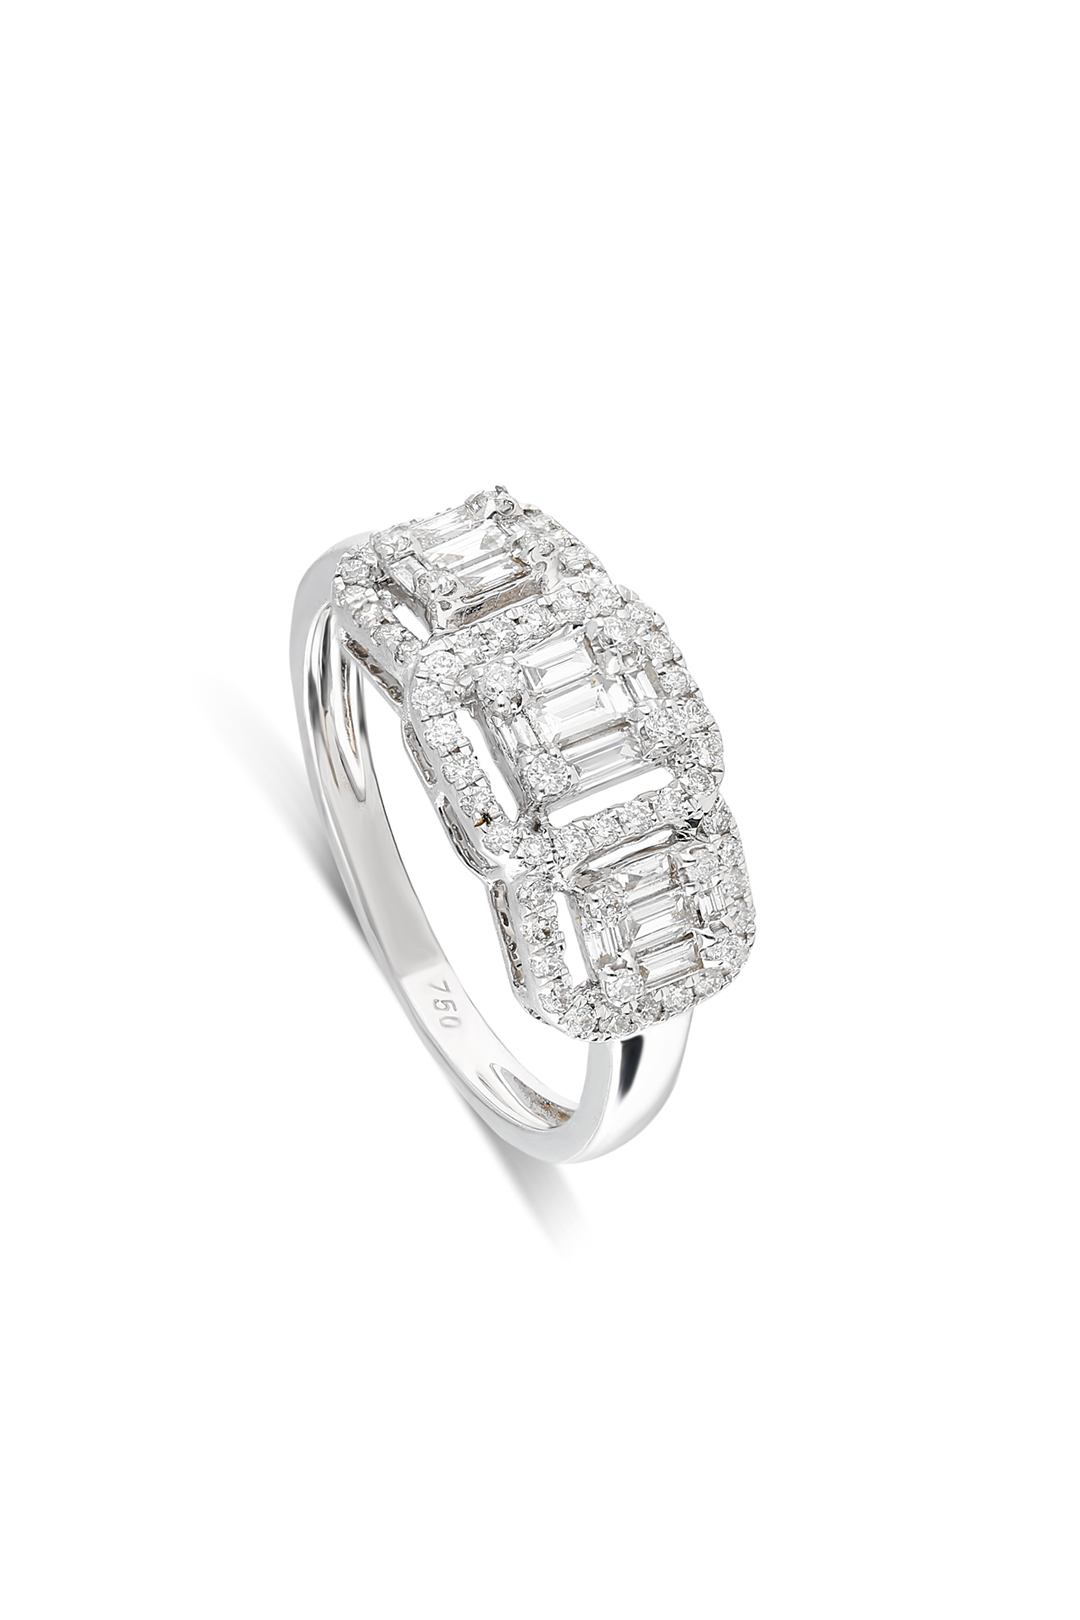 THREE BAGUETTES DIAMOND RING